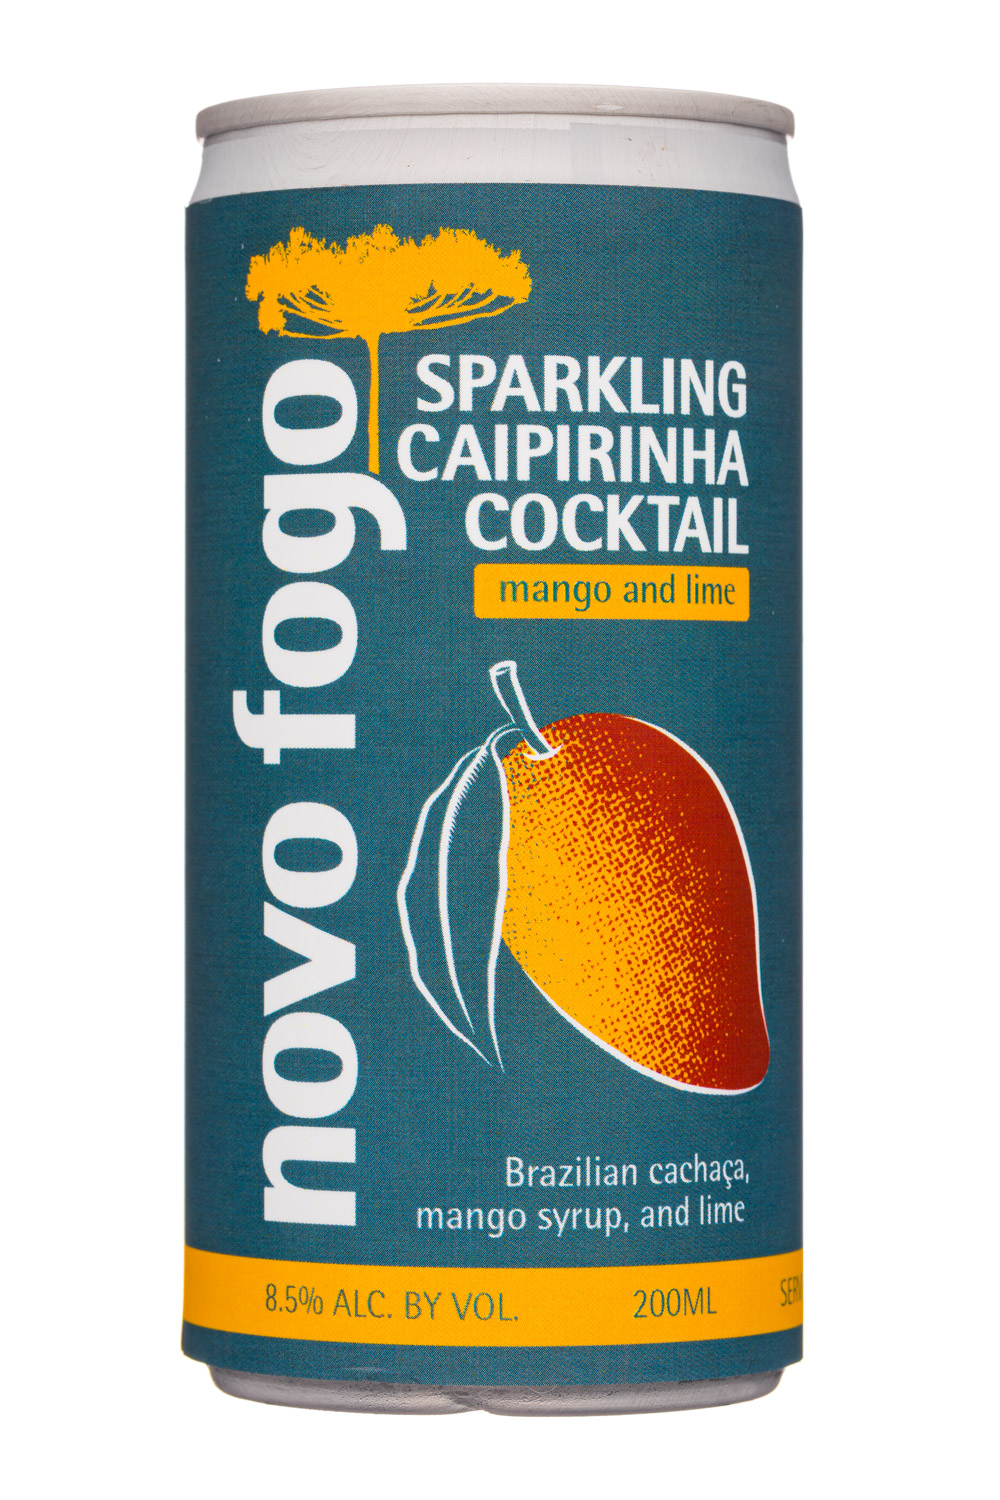 Sparkling Caipirinha Cocktail - Mango and Lime